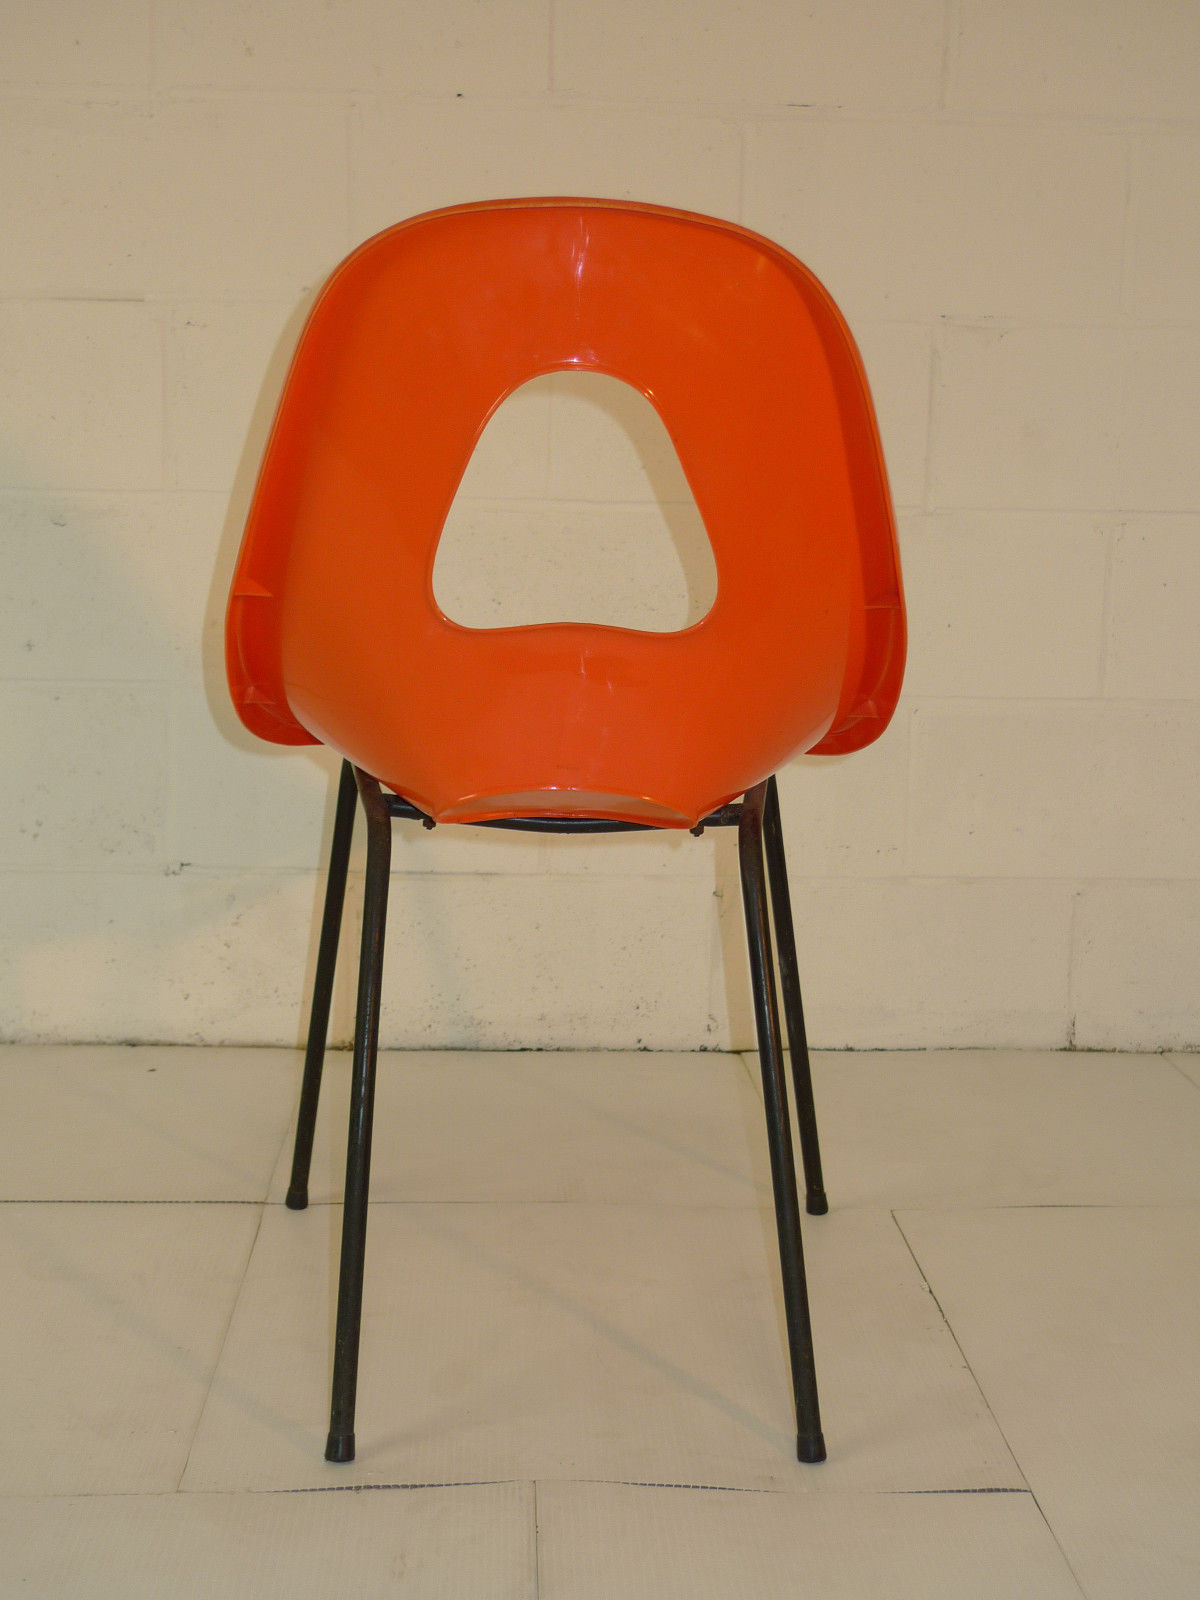 Orange Mid Century Modern Chair Orange Plastic Space Age Mid Century Modern Eames Era